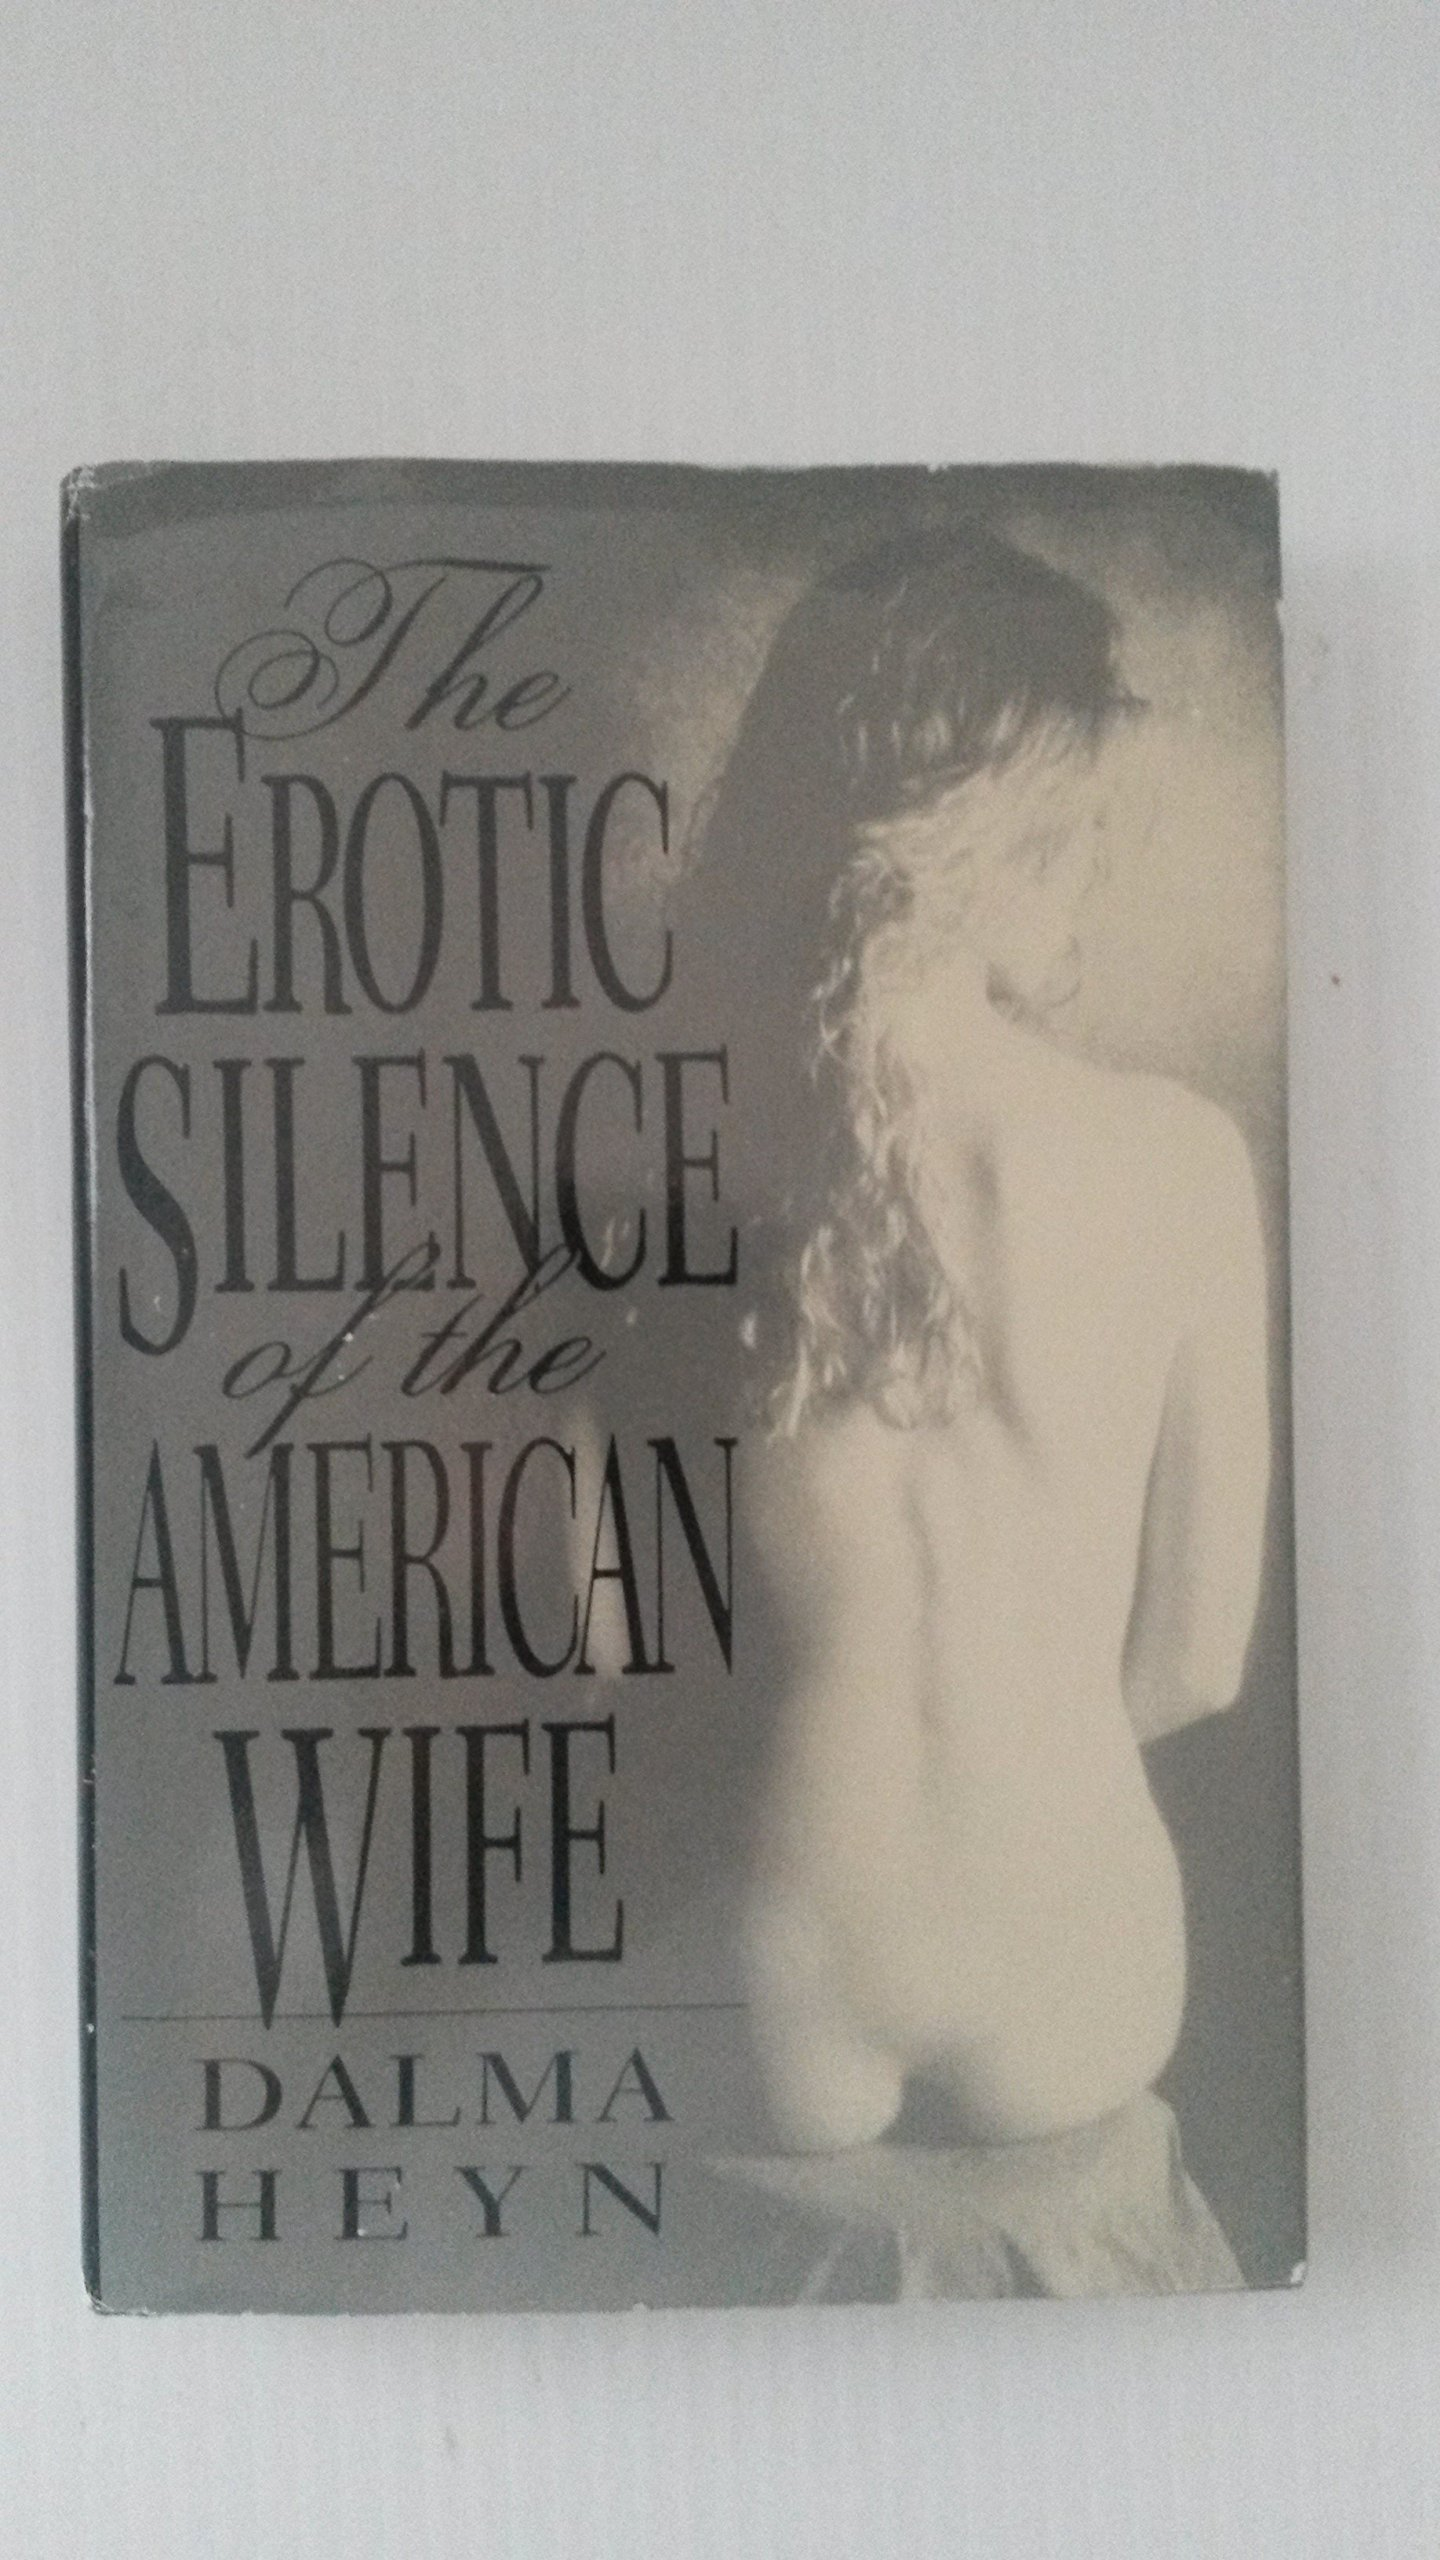 The erotic silence of the american wife penis